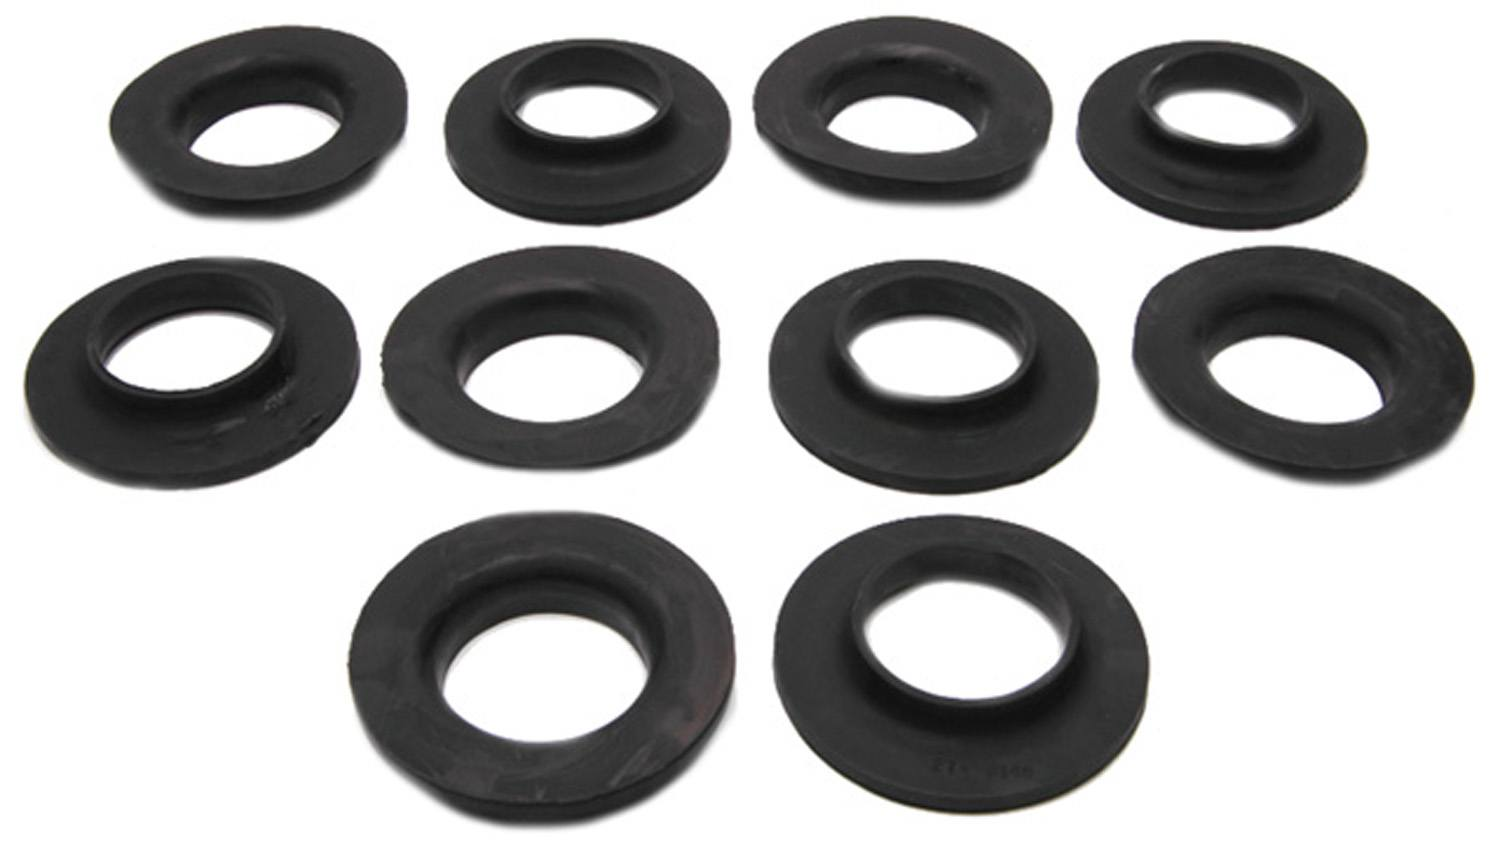 ACDELCO PROFESSIONAL - Coil Spring Insulator - Pack of 10 (Rear) - DCC 45G18001